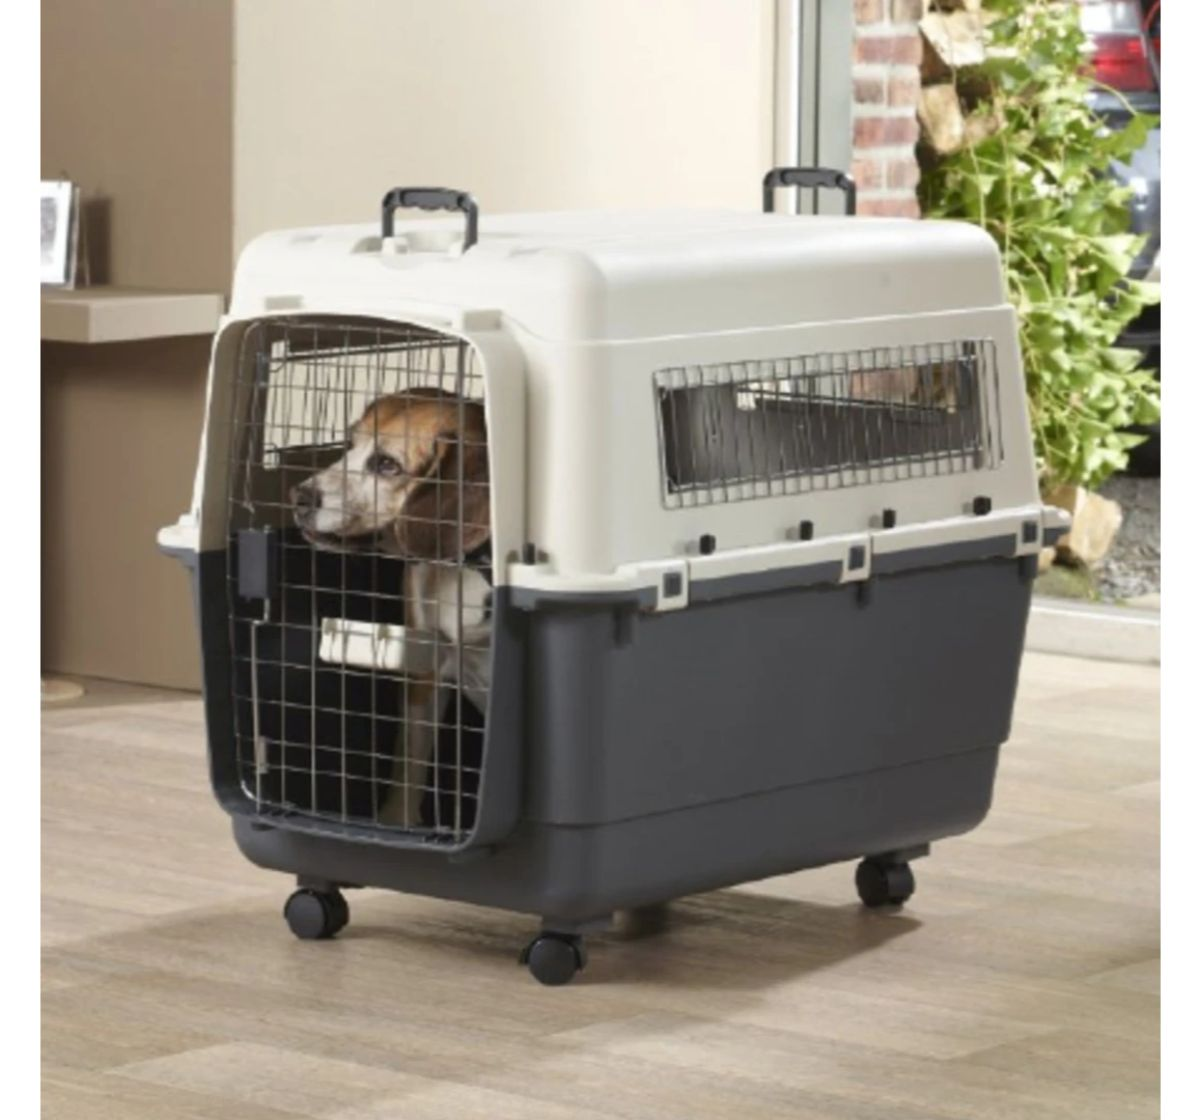 Savic Andes 8 Pet Carrier (LxBxH - 122X83X90 cm)- Ivory